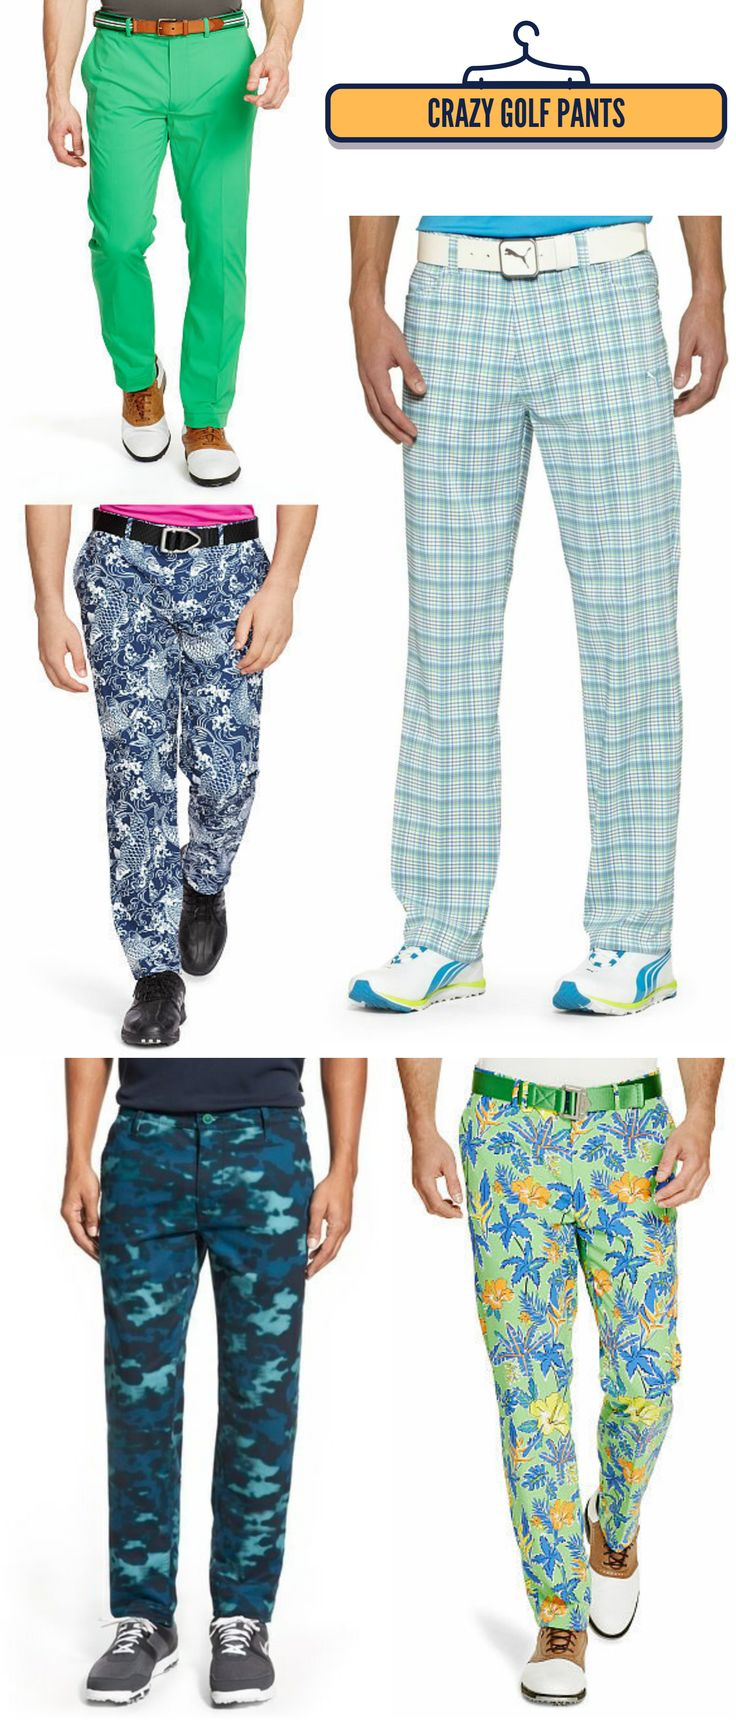 17 Best images about Crazy Golf Pants on Pinterest | Mens ...